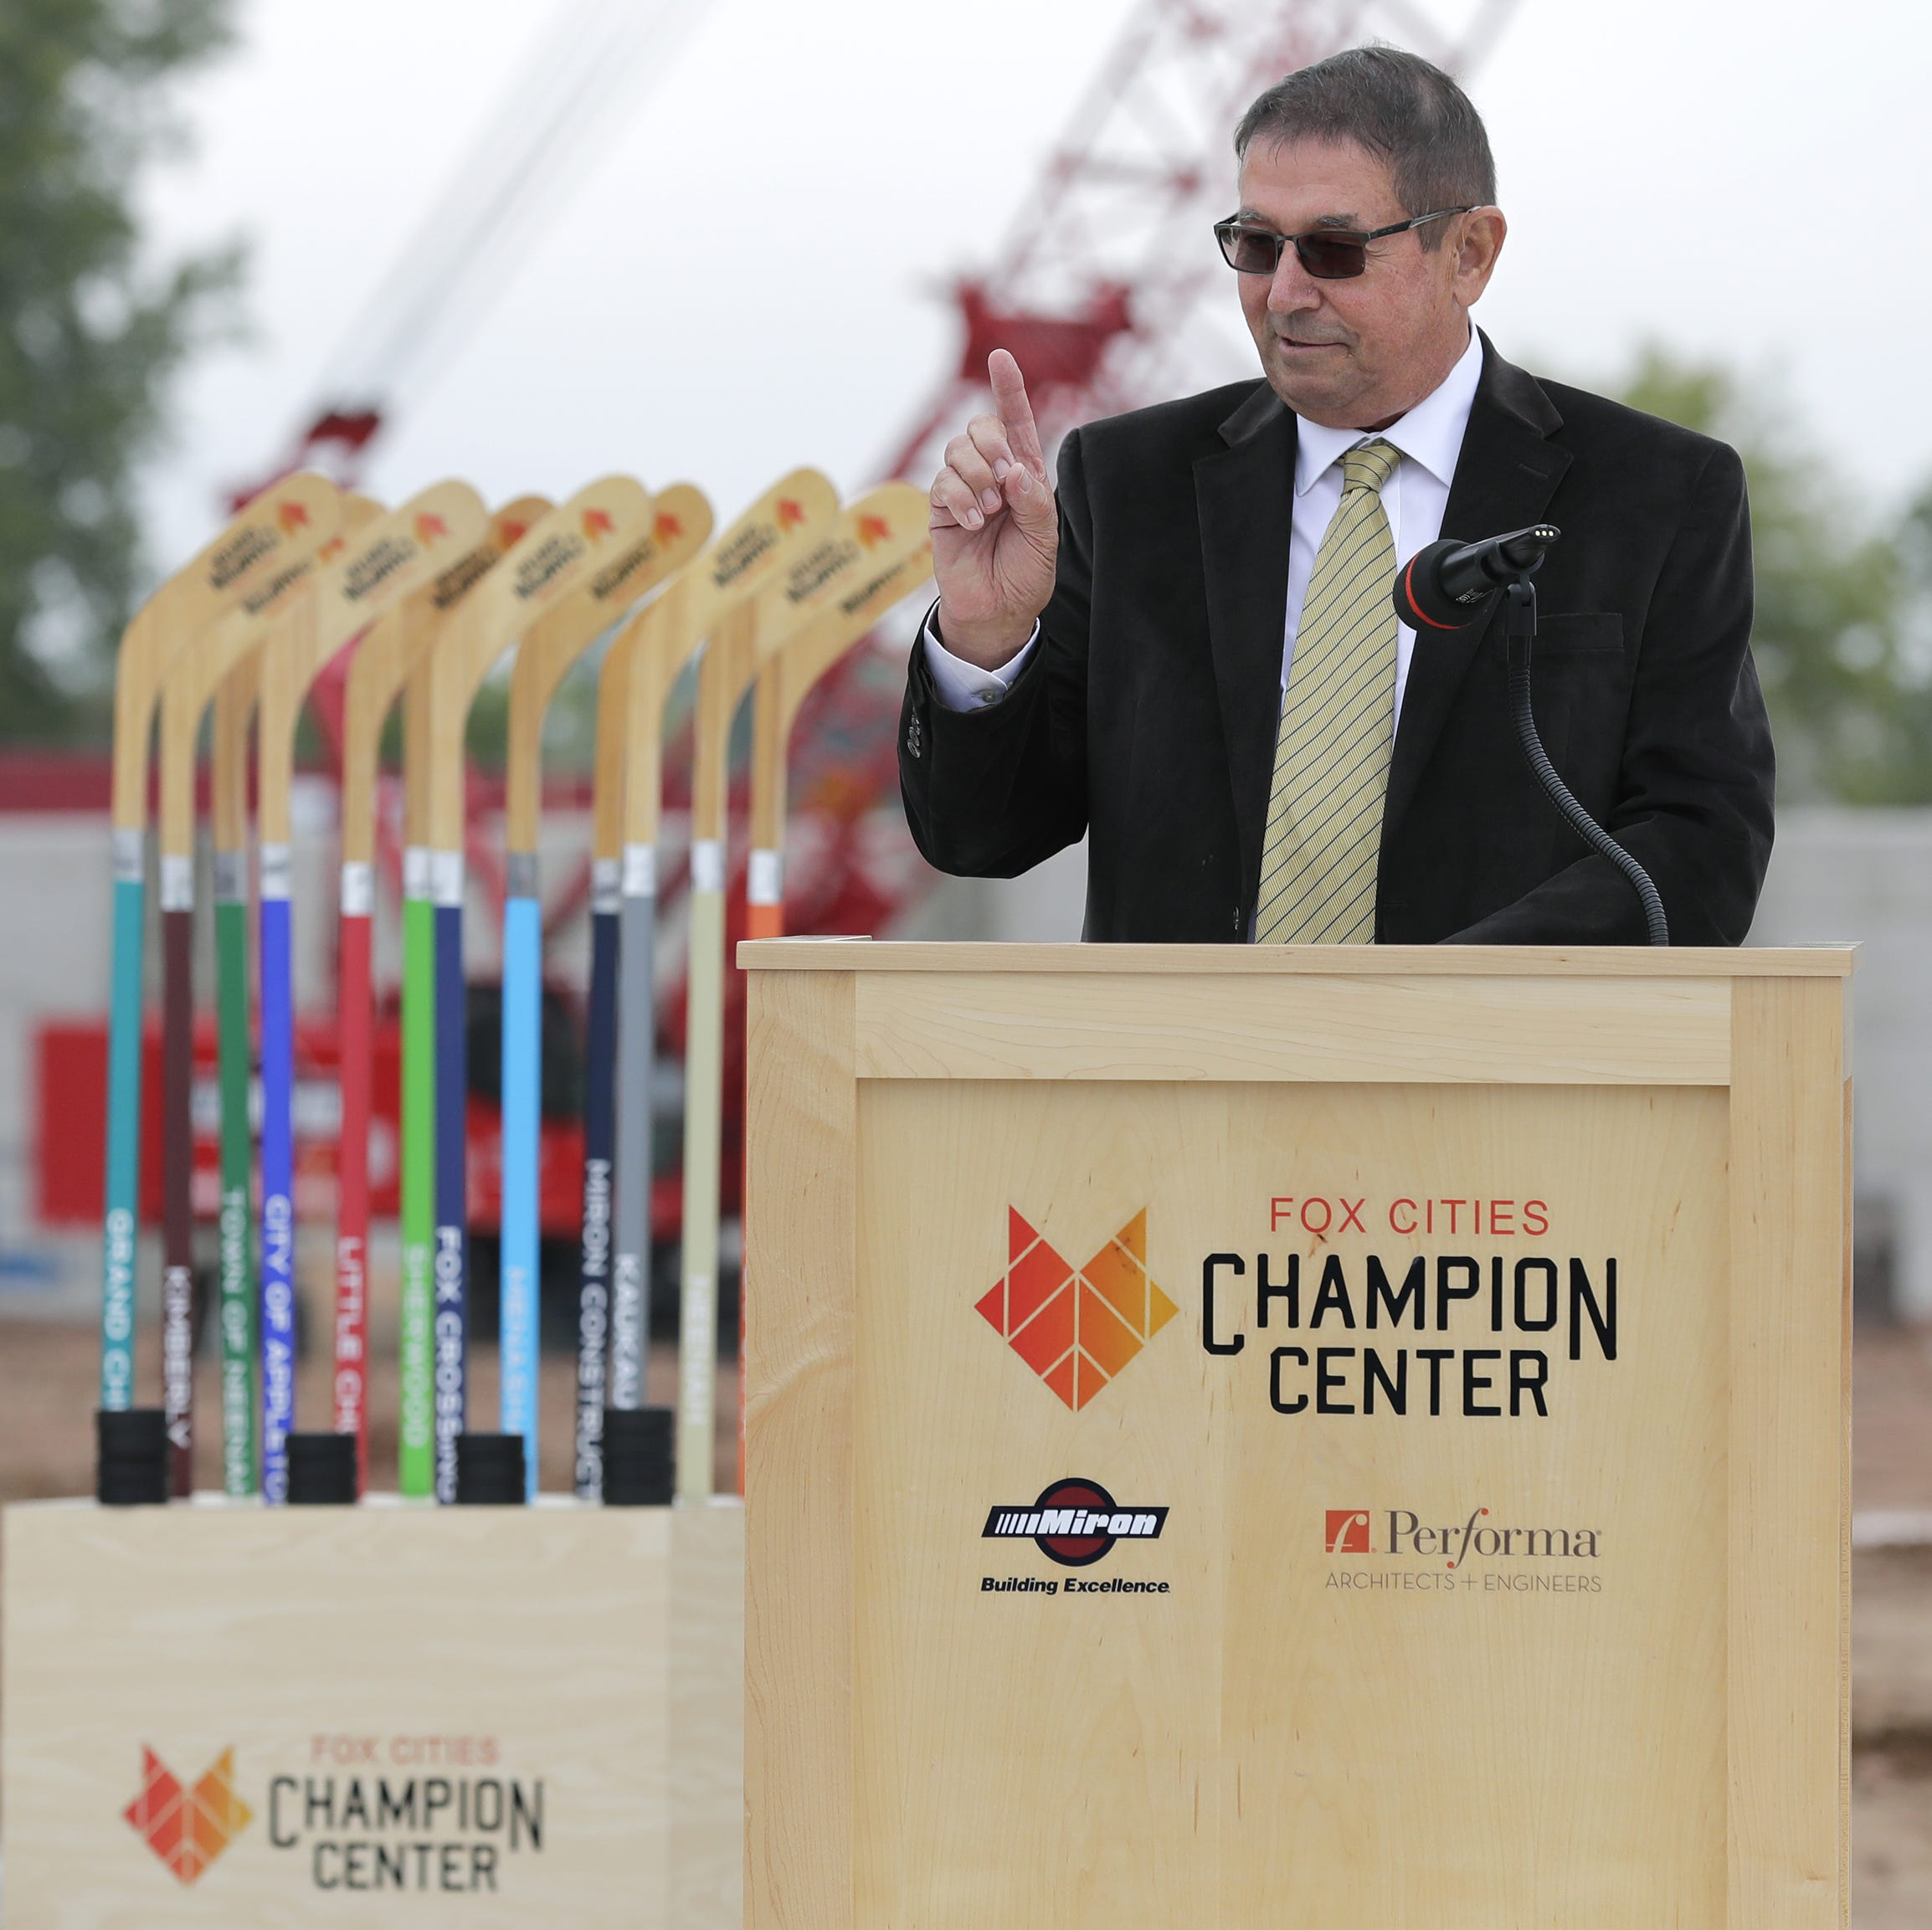 Groundbreaking ceremony launches $30M Fox Cities Champion Center project